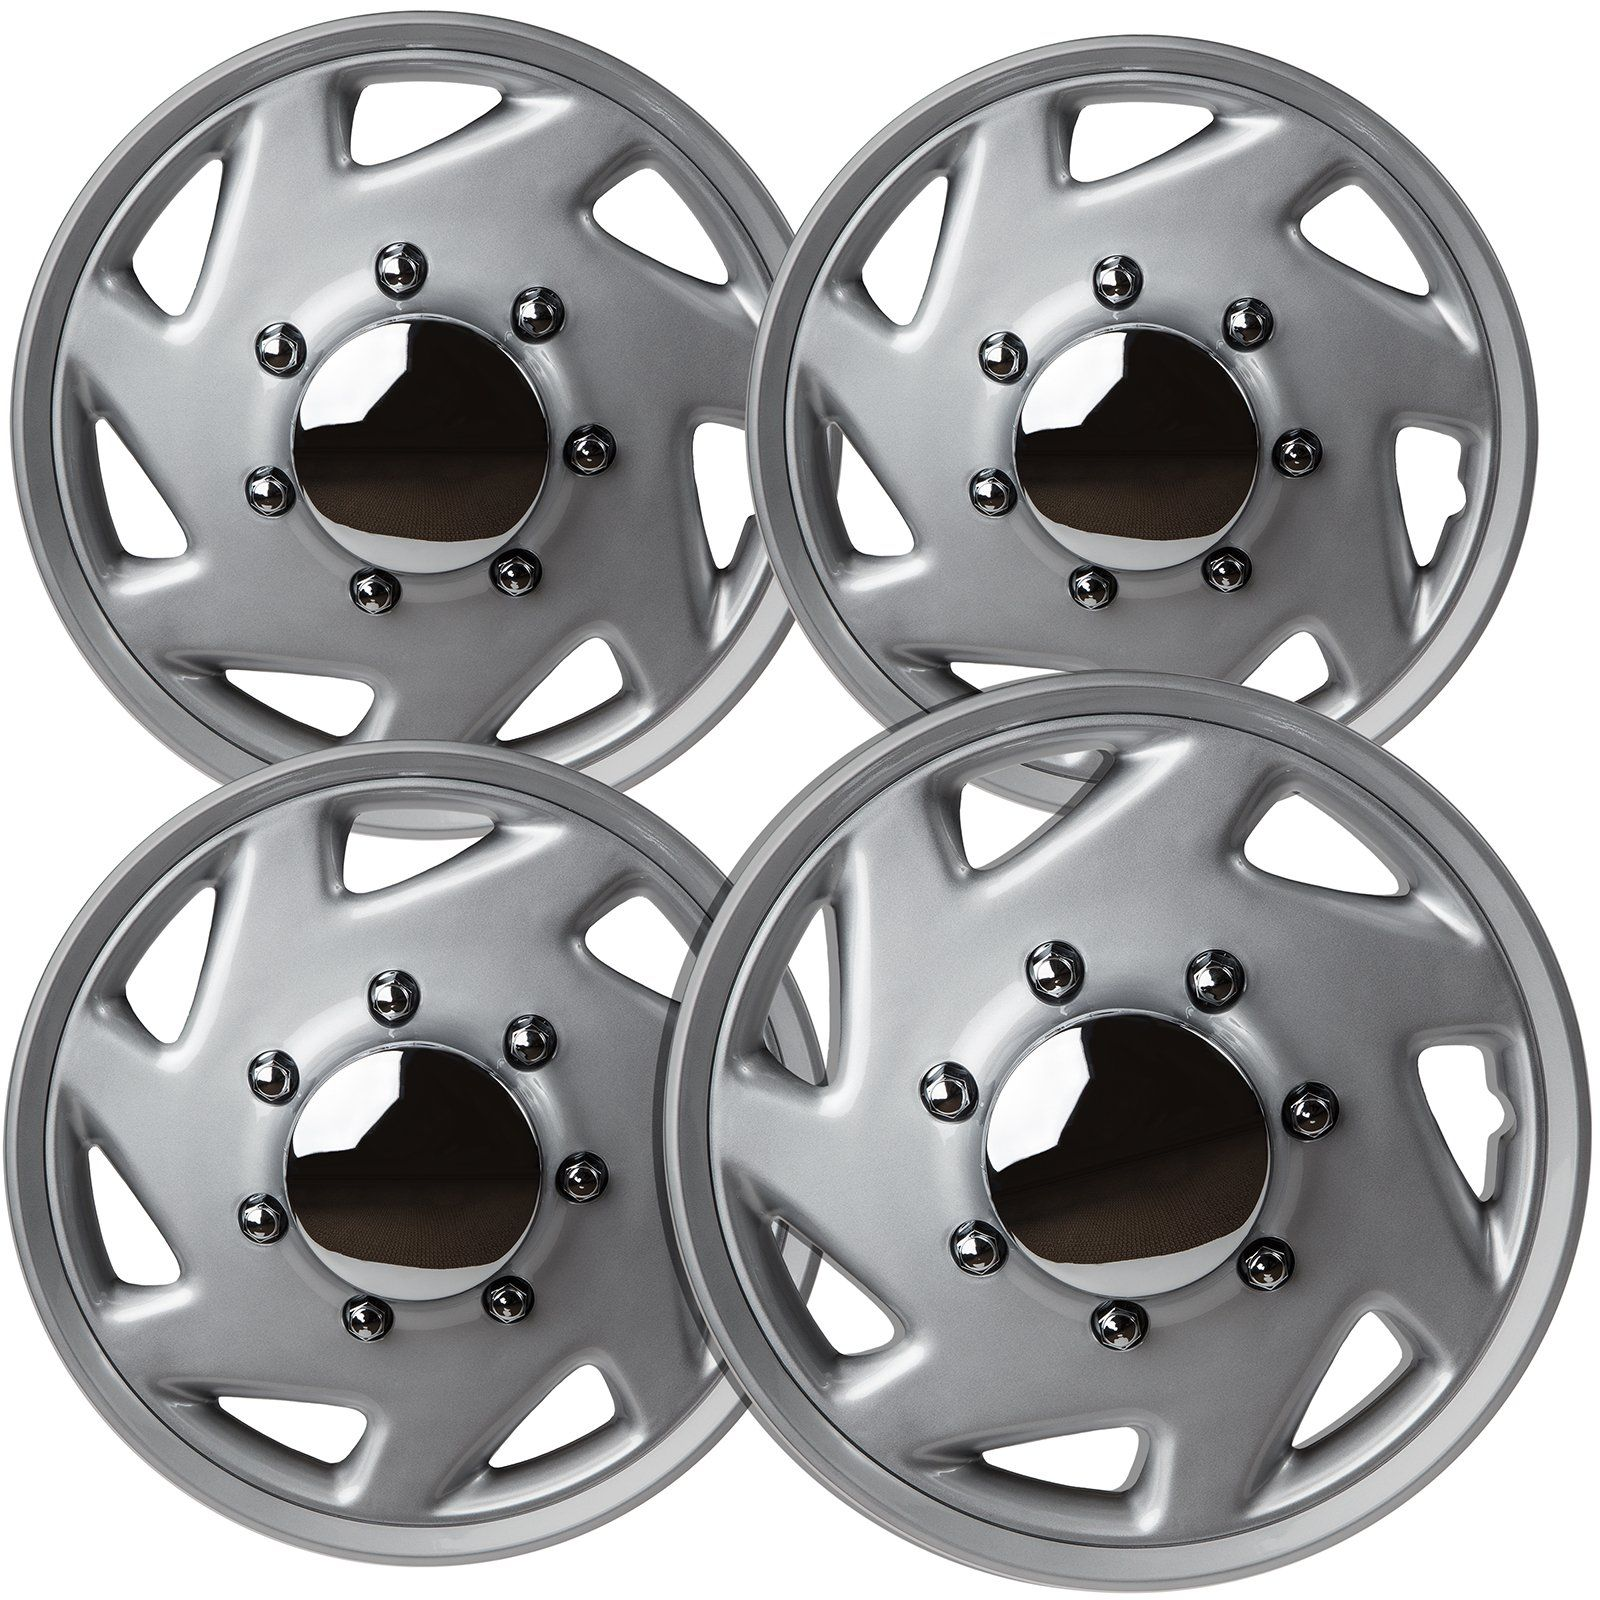 Oxgord Hubcaps For Ford E150 Pack Of 4 Wheel Covers 16 Inch 7 Spoke Snap On Silver Chrome You Can Get Additional Details A Chrome Rims Wheel Cover Hub Caps